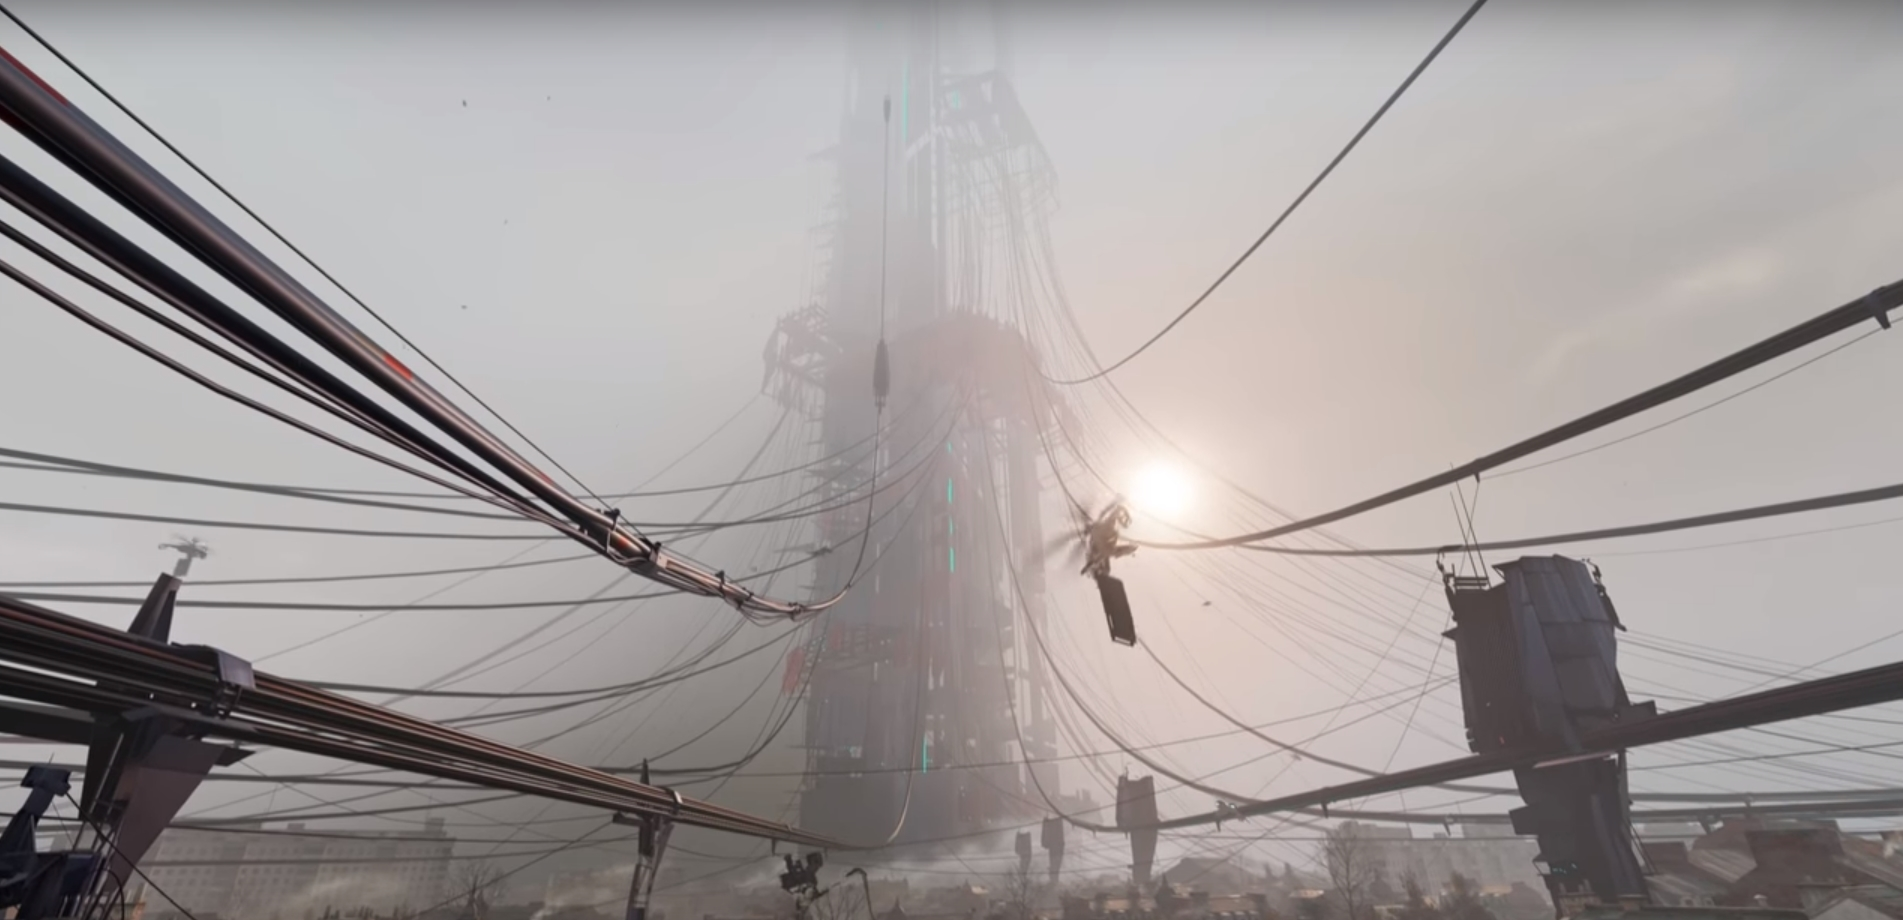 Half Life 3: Alyx Gets A Gorgeous Announcement Trailer And Release Date